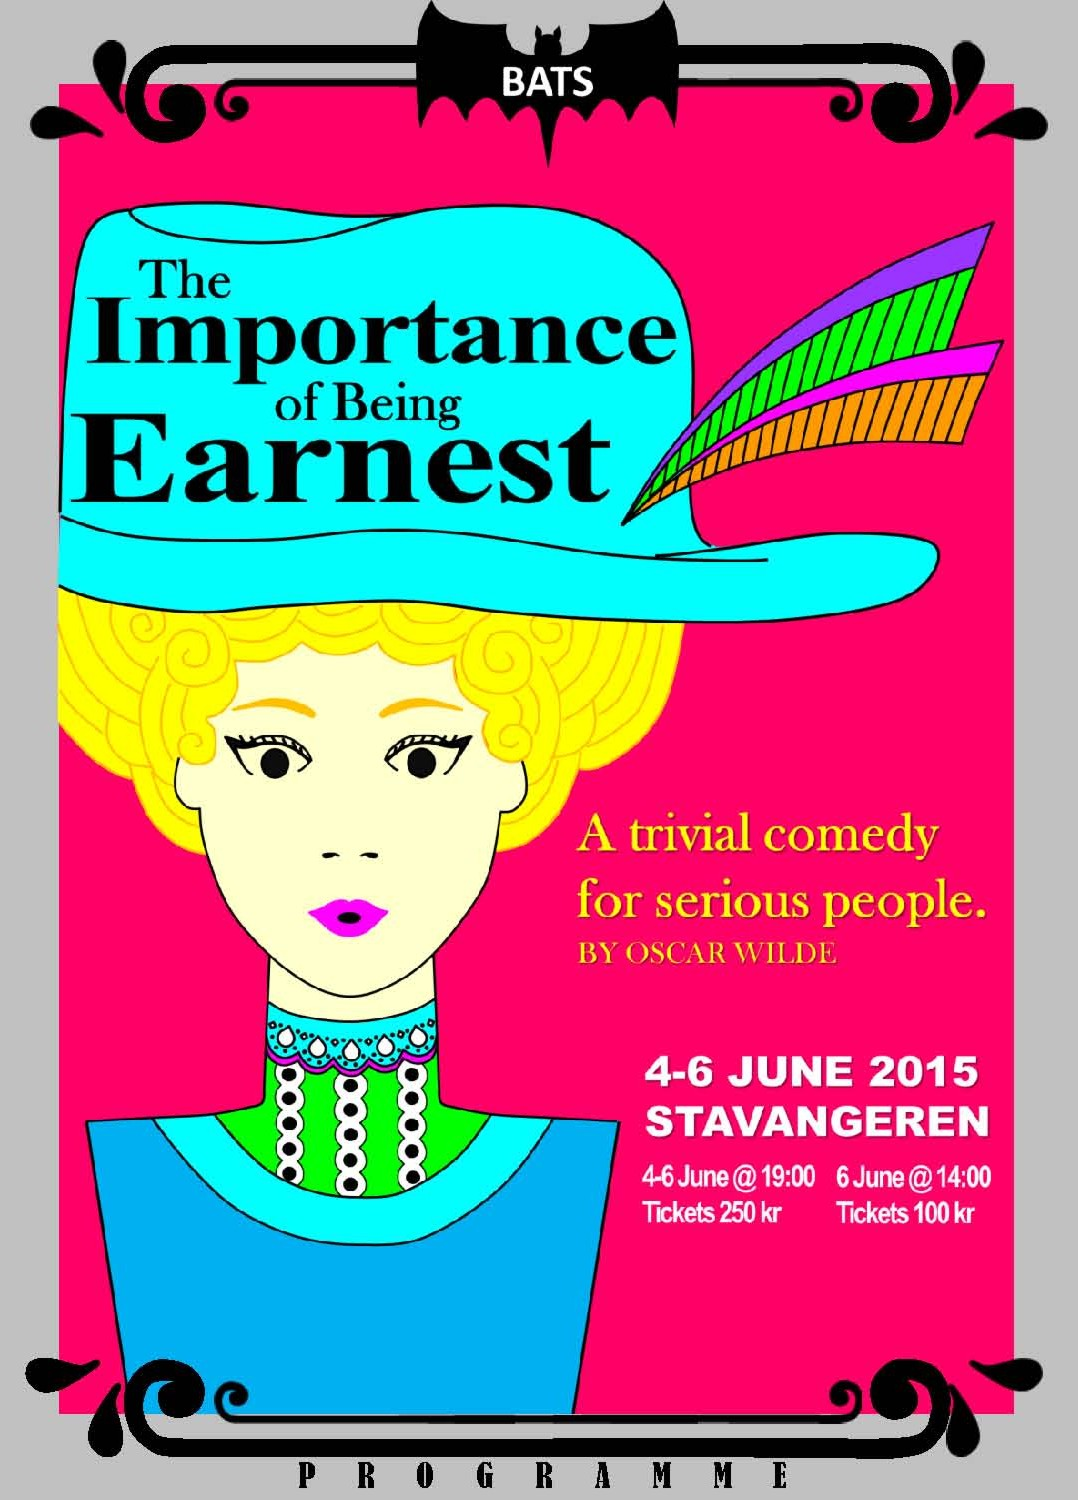 The importance of being earnest bats theatre for Farcical comedy in the importance of being earnest